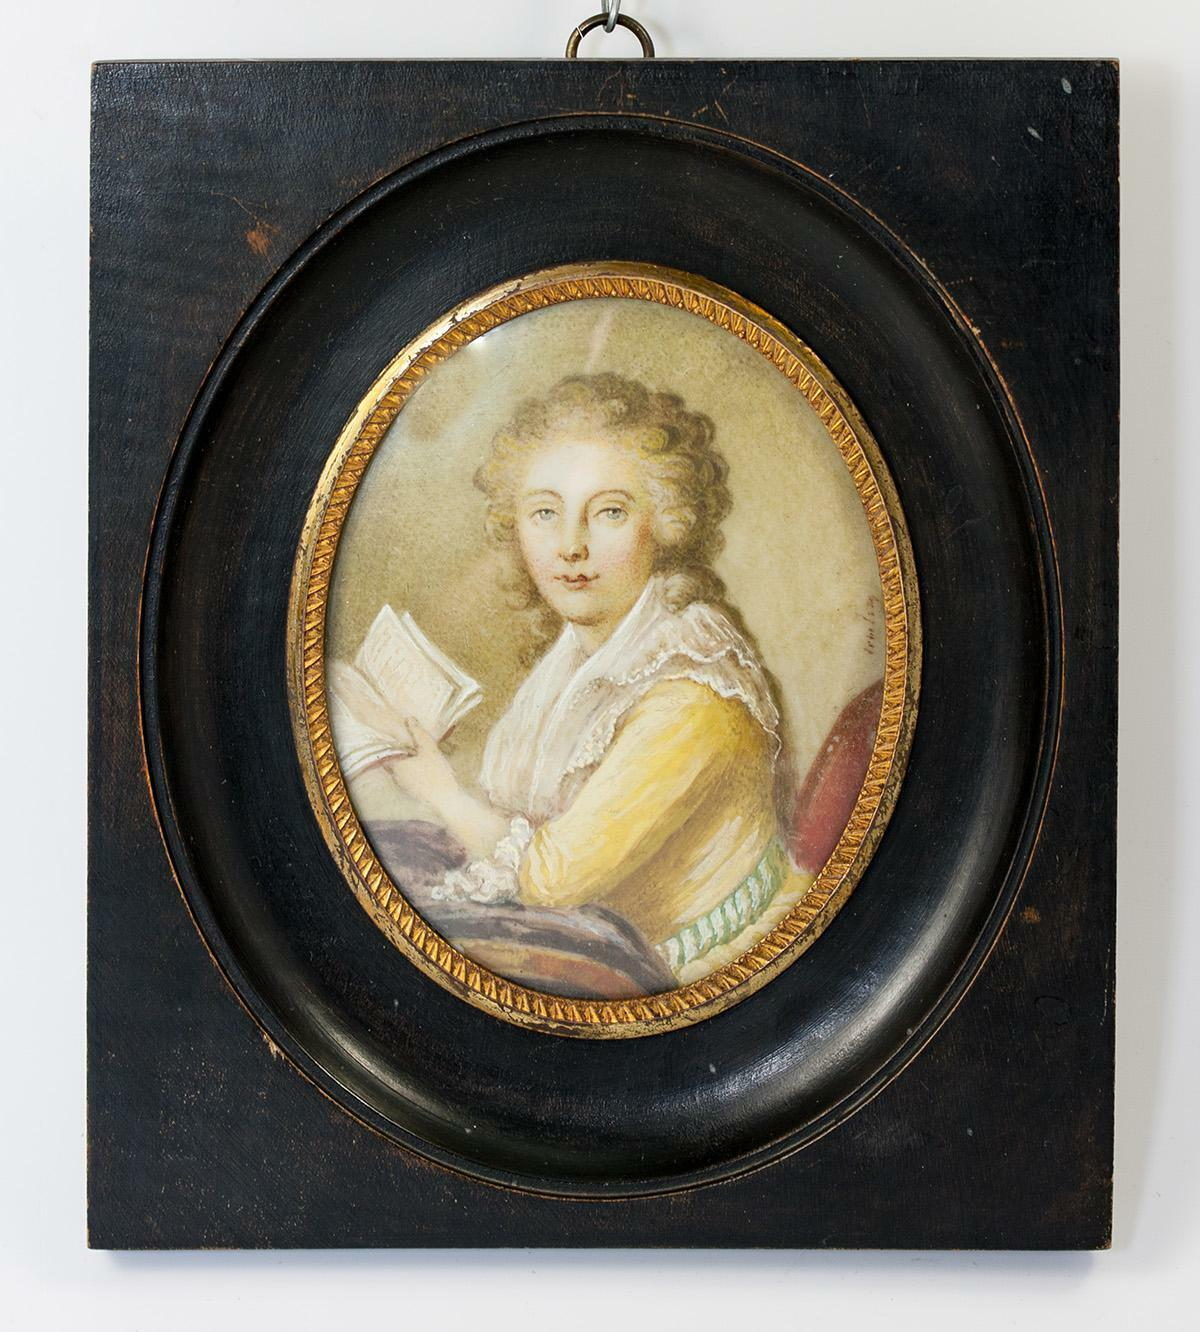 Antique French Hand Painted Portrait Miniature, Woman with Book, Mme Du Barry